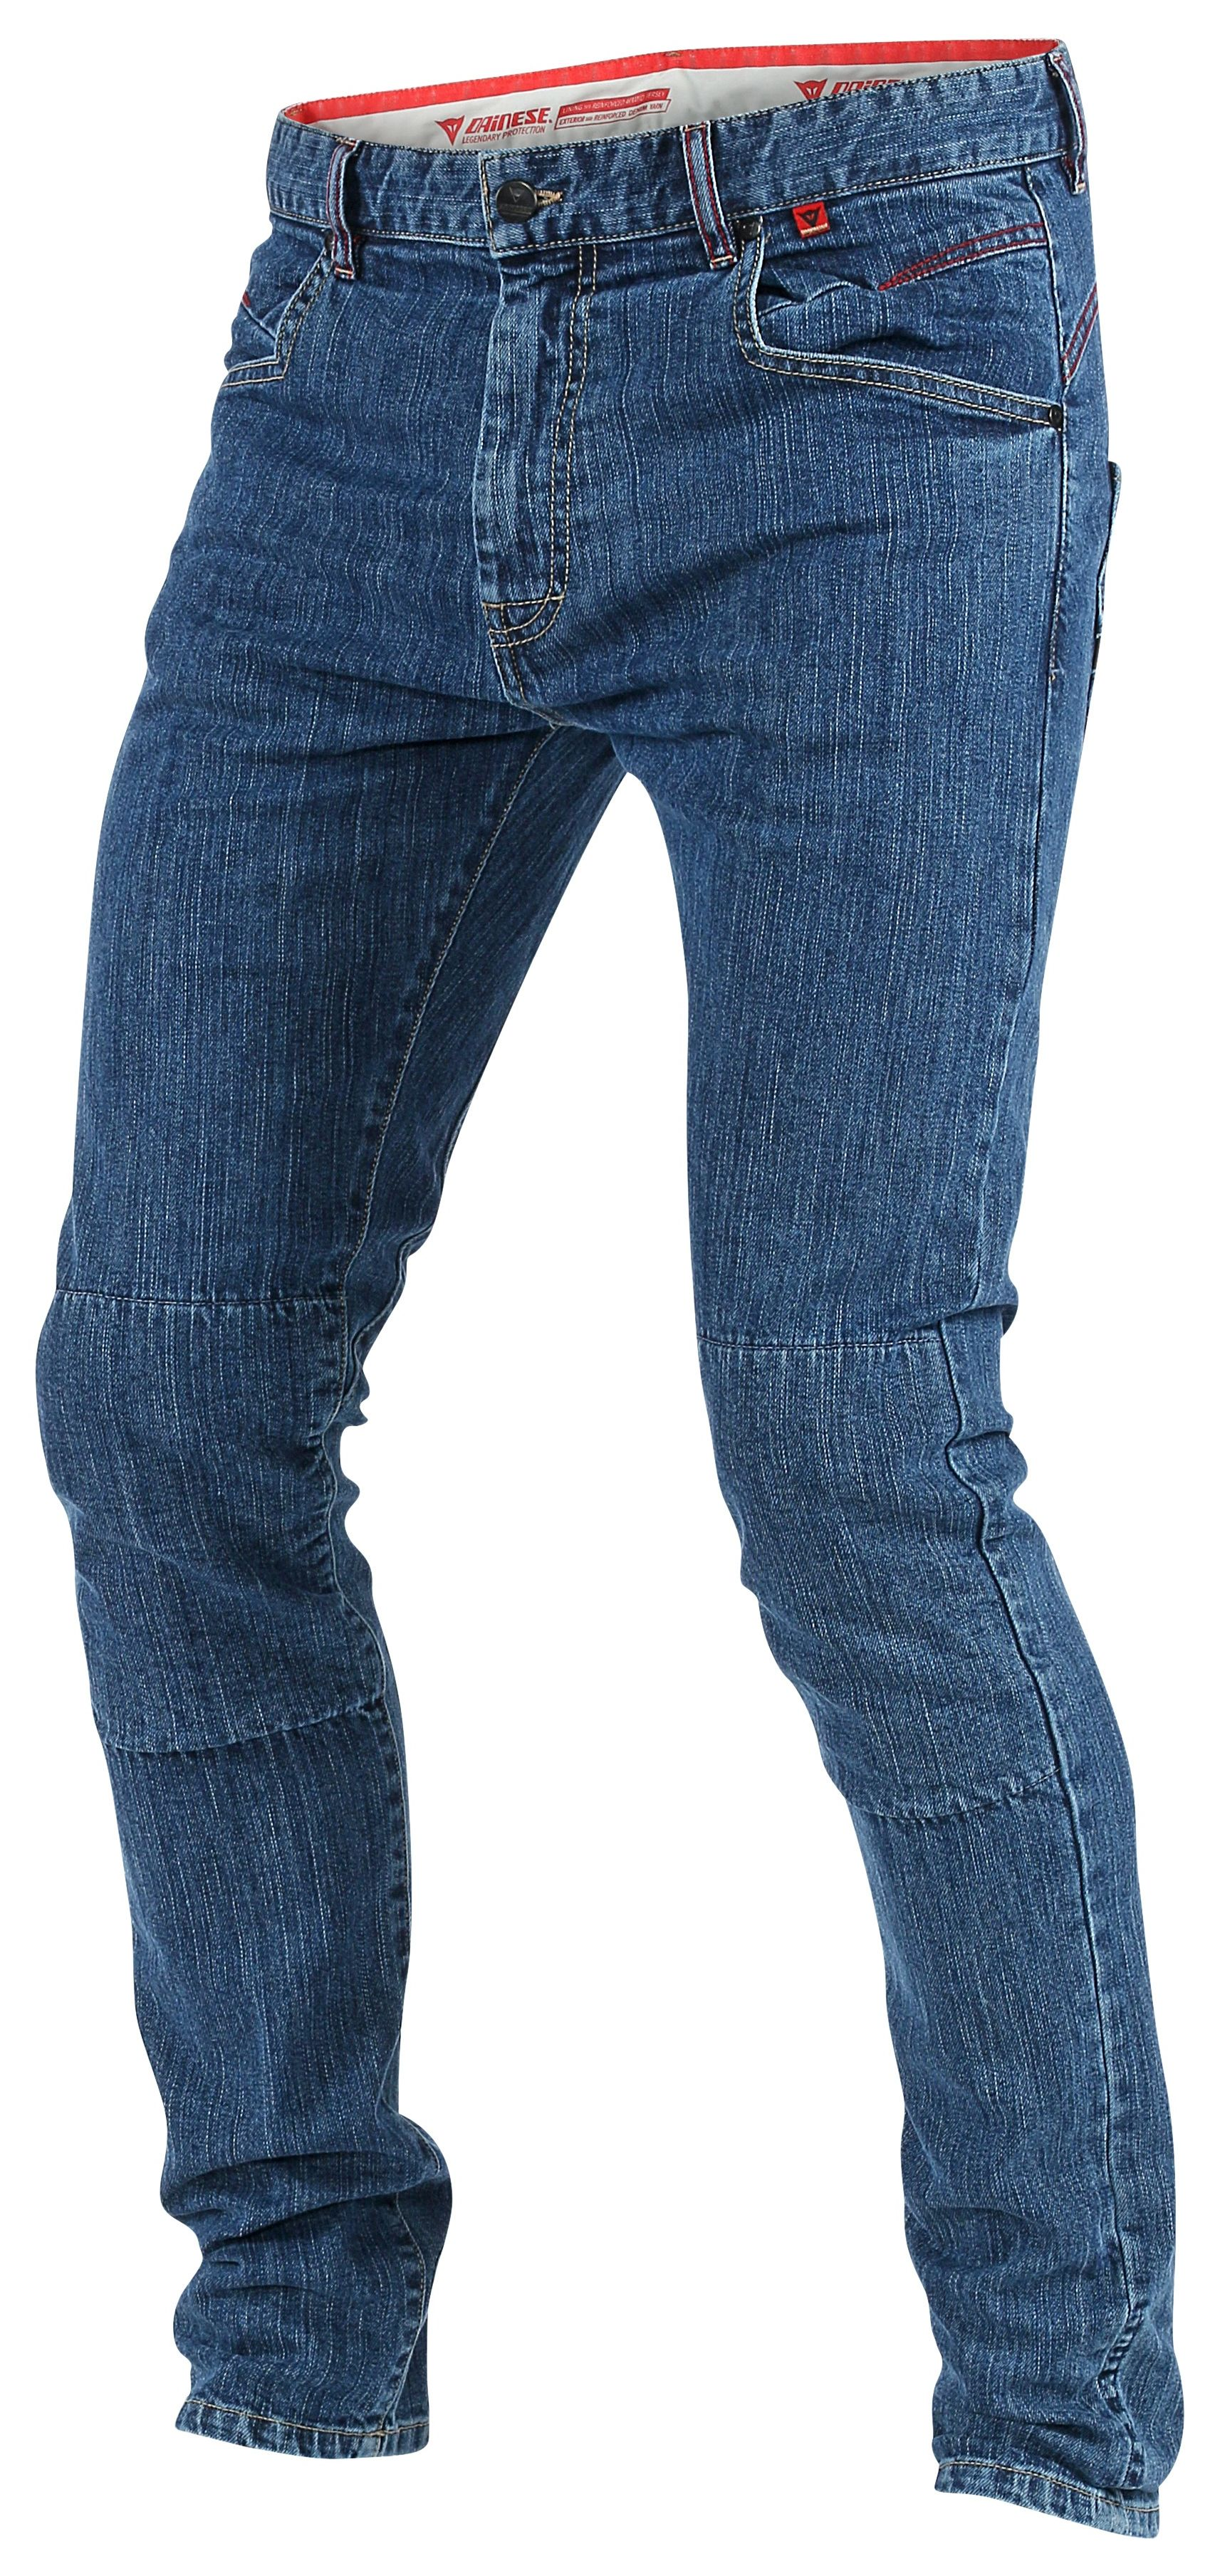 Dainese Sunville Skinny Jeans - RevZilla